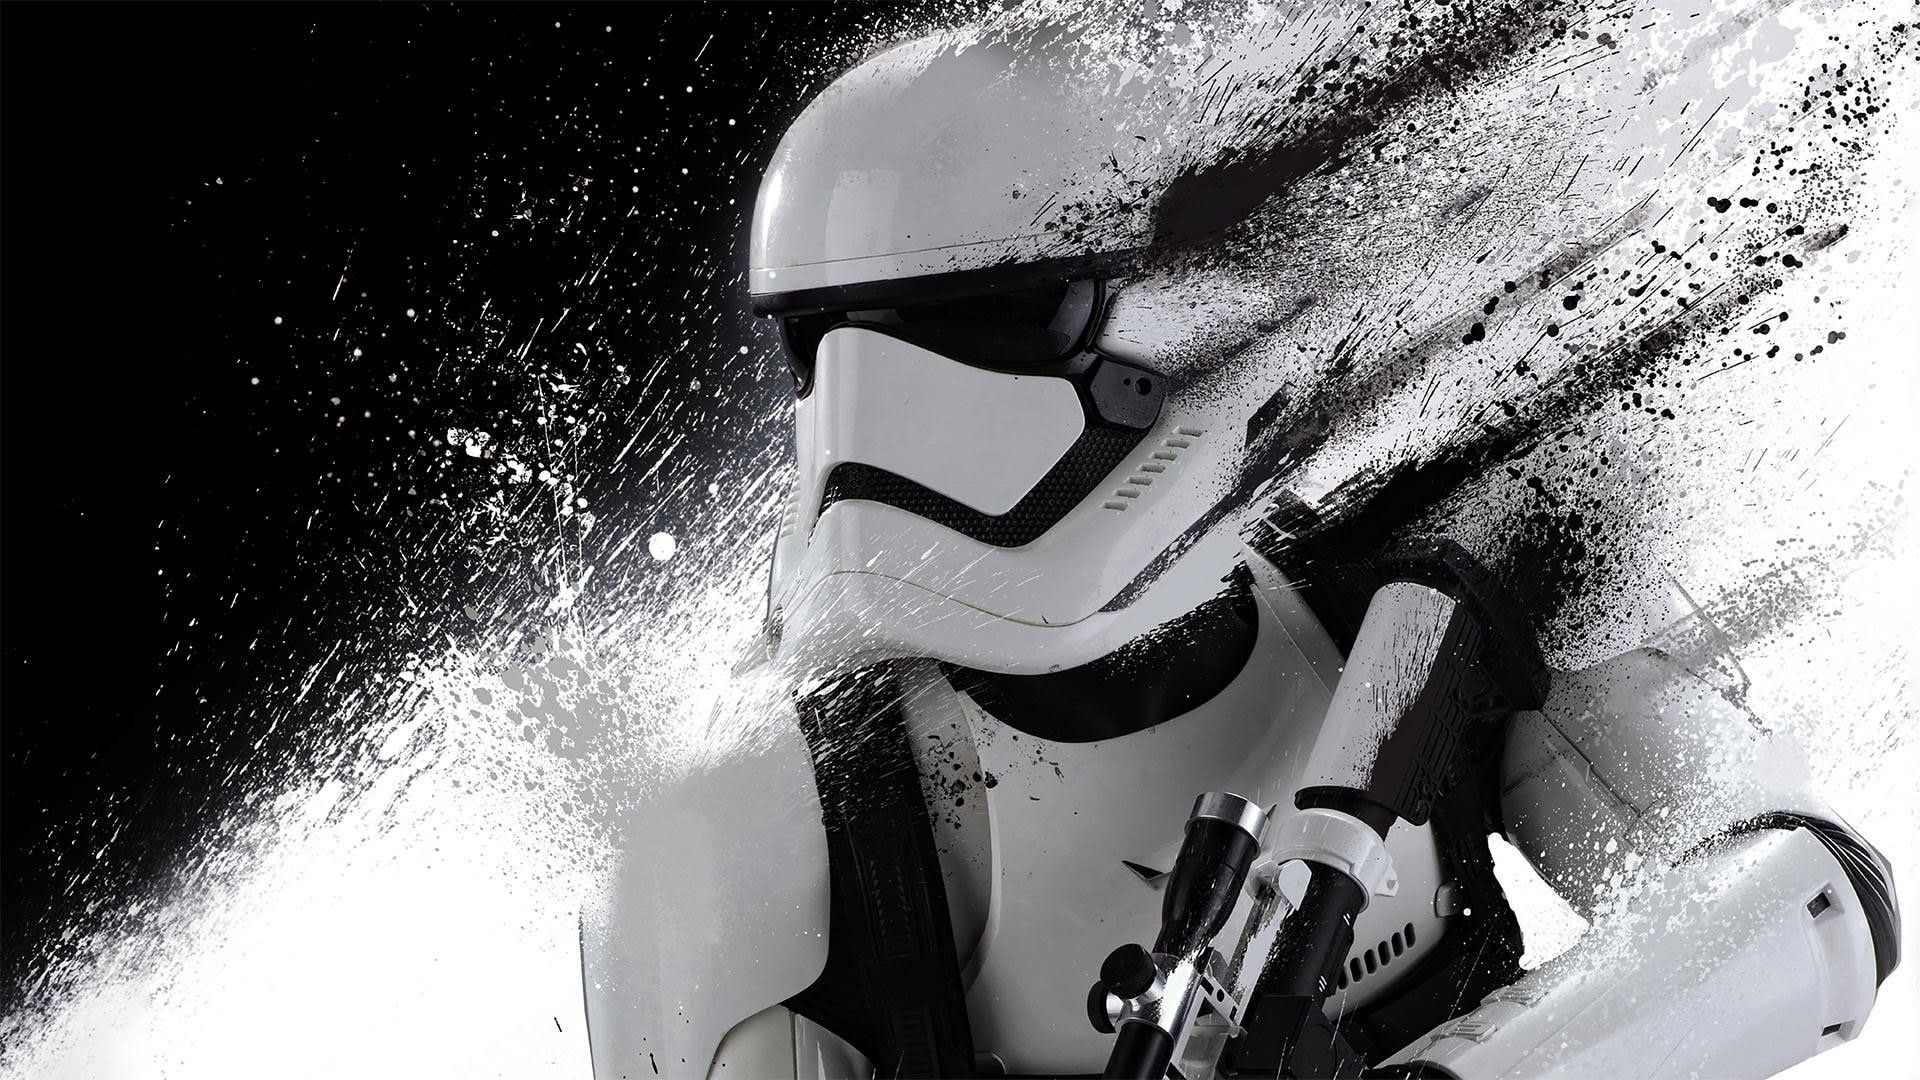 Star Wars Storm Trooper Wallpaper Star wars wallpaper